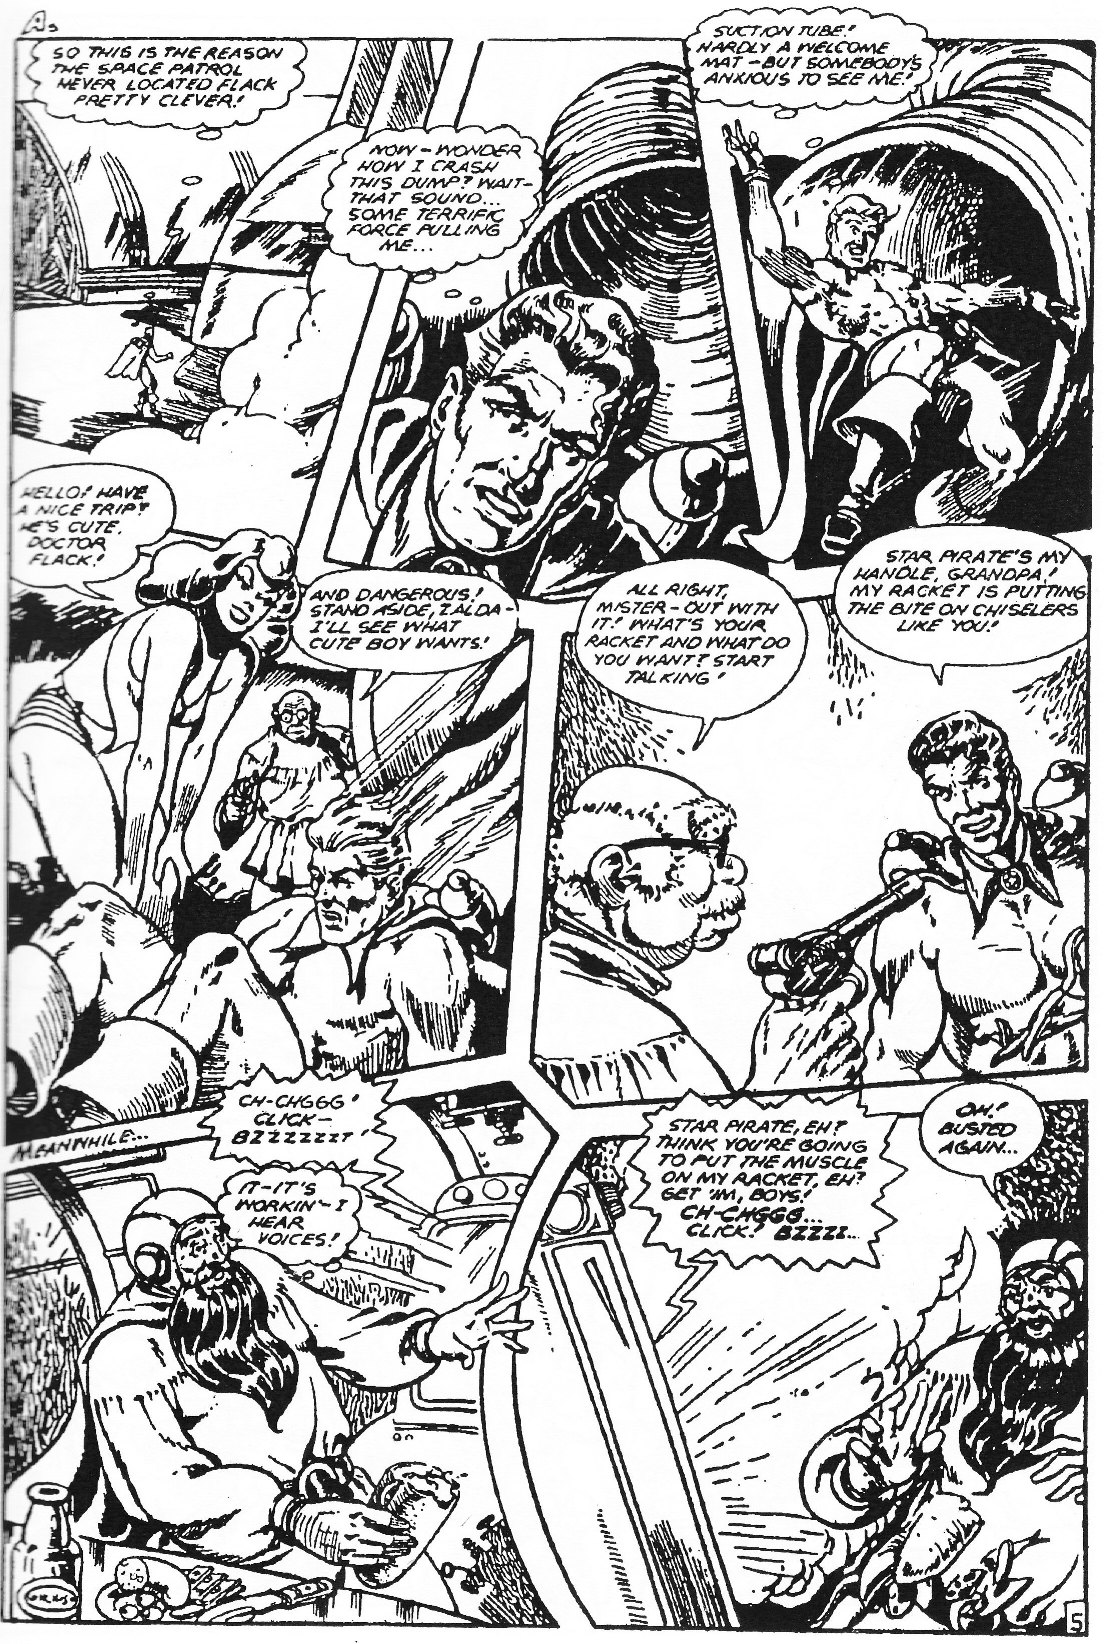 Read online Men of Mystery Comics comic -  Issue #70 - 55